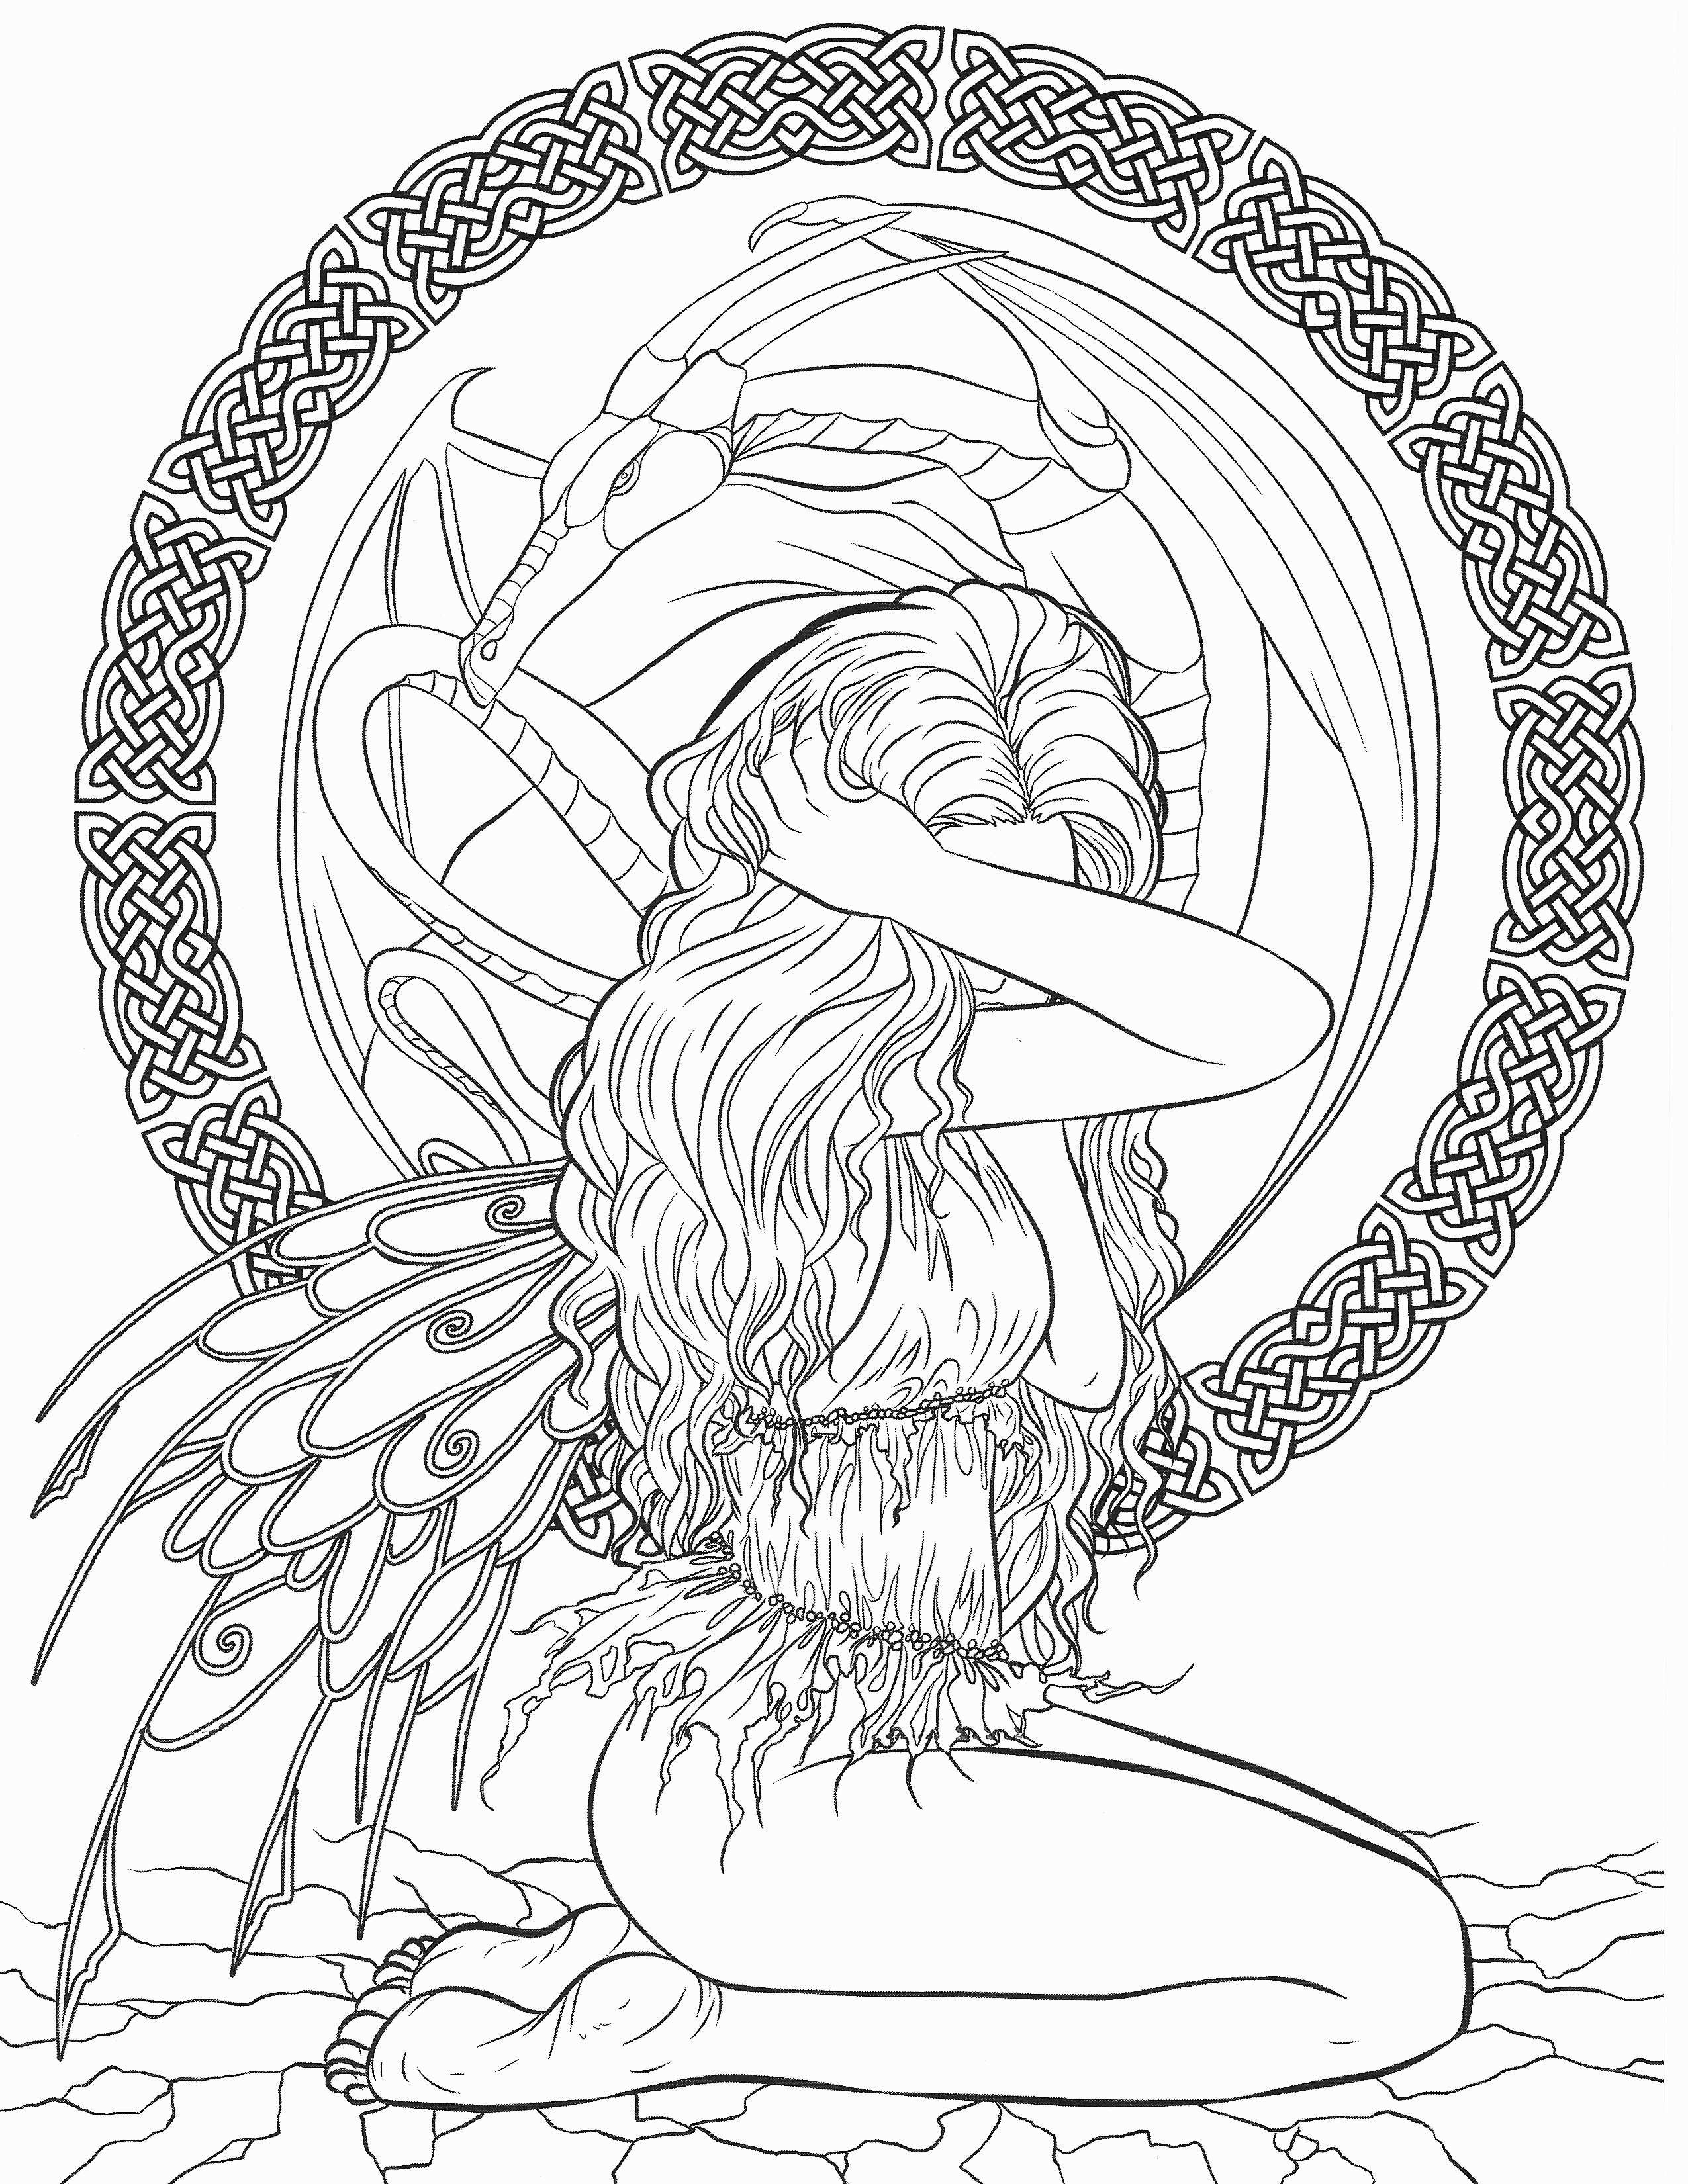 Maleficent Coloring Pages Greek Flag Coloring Page New